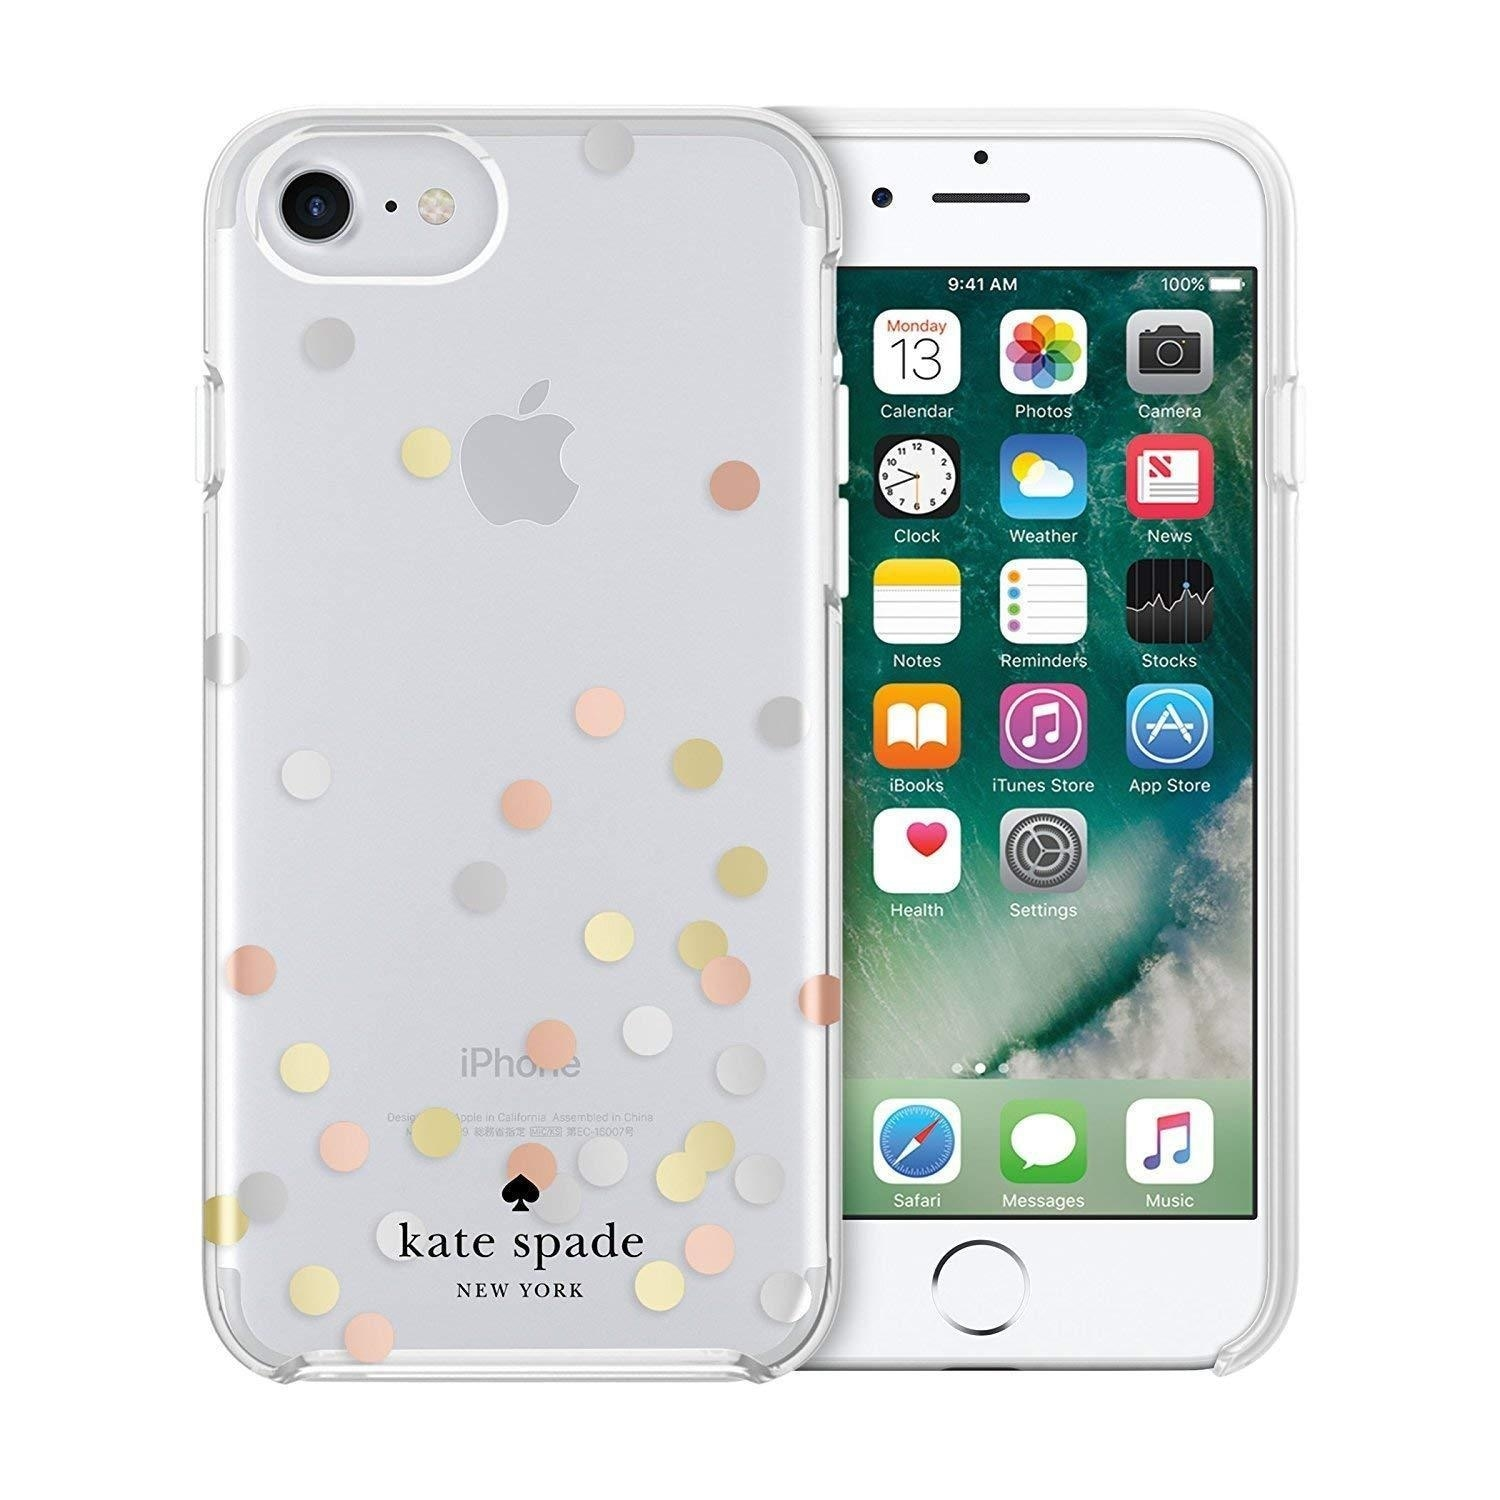 brand new 27ab4 3a542 Kaete Spade New York Confetti Dot Protective Case for iPhone 8 / iPhone 7 /  iPhone 6, Silver/Gold/Rose Gold